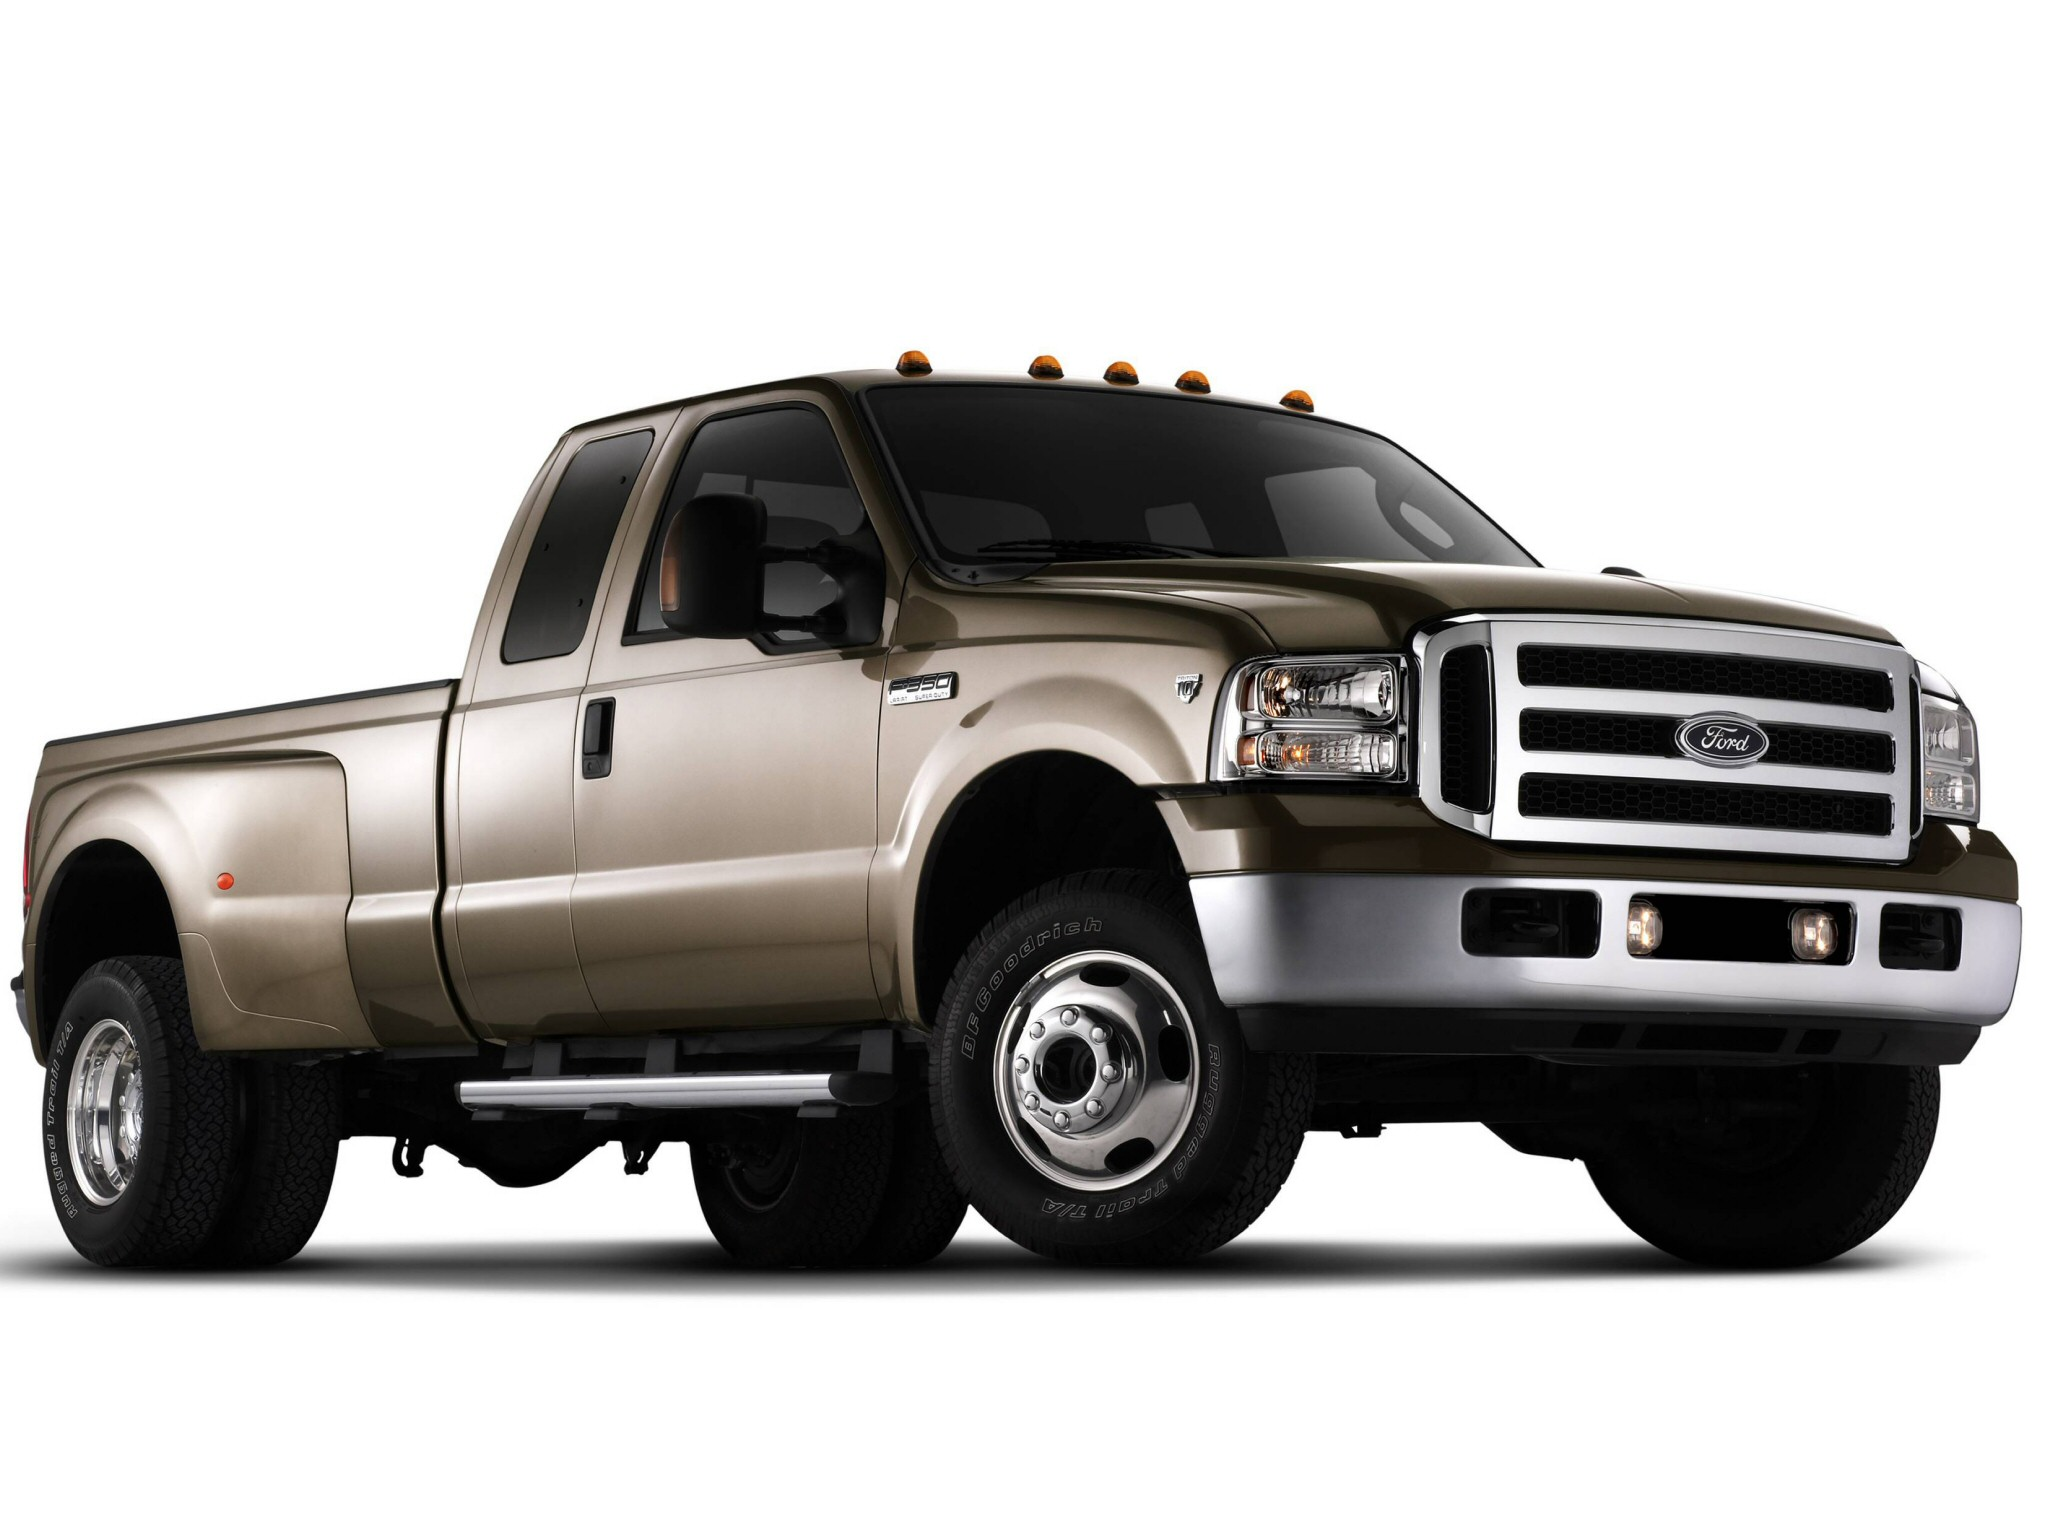 Ford F-350 Super Duty #6